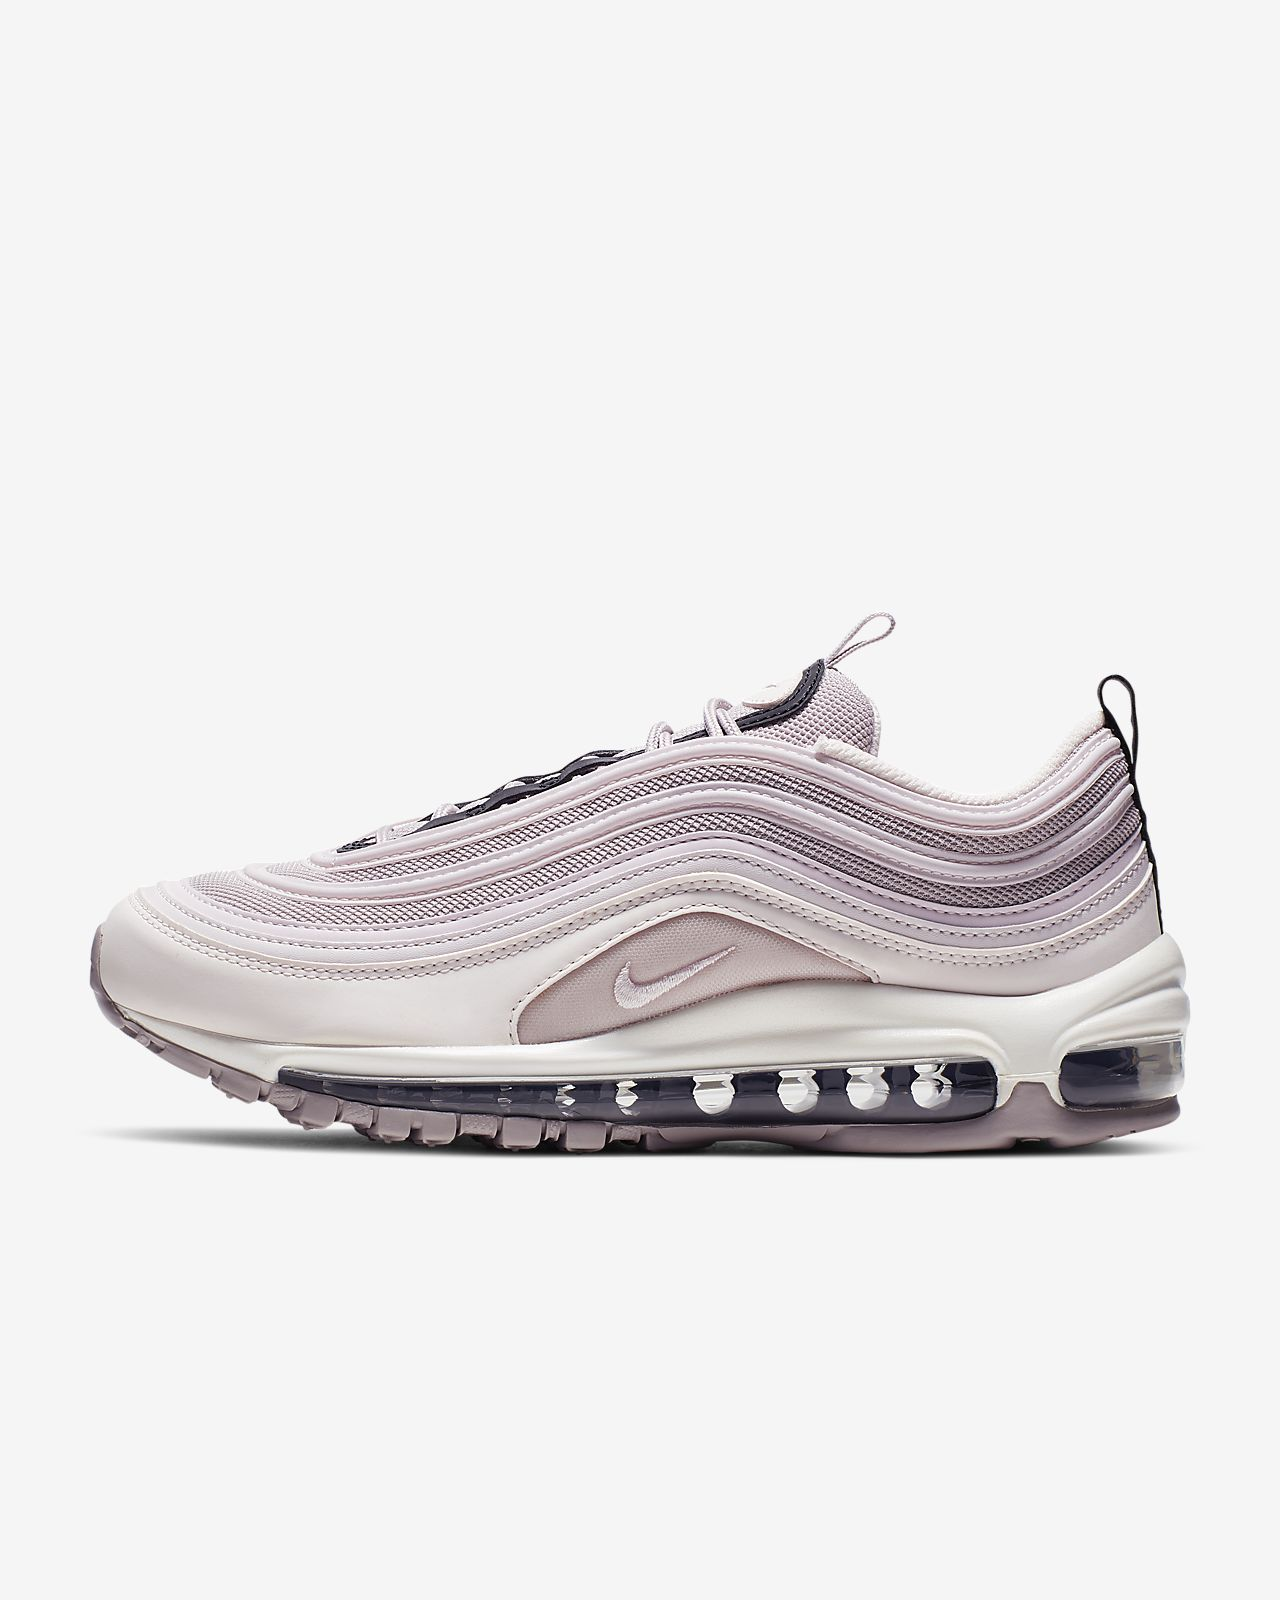 7a2afb02e68 Nike Air Max 97 Women s Shoe. Nike.com ZA